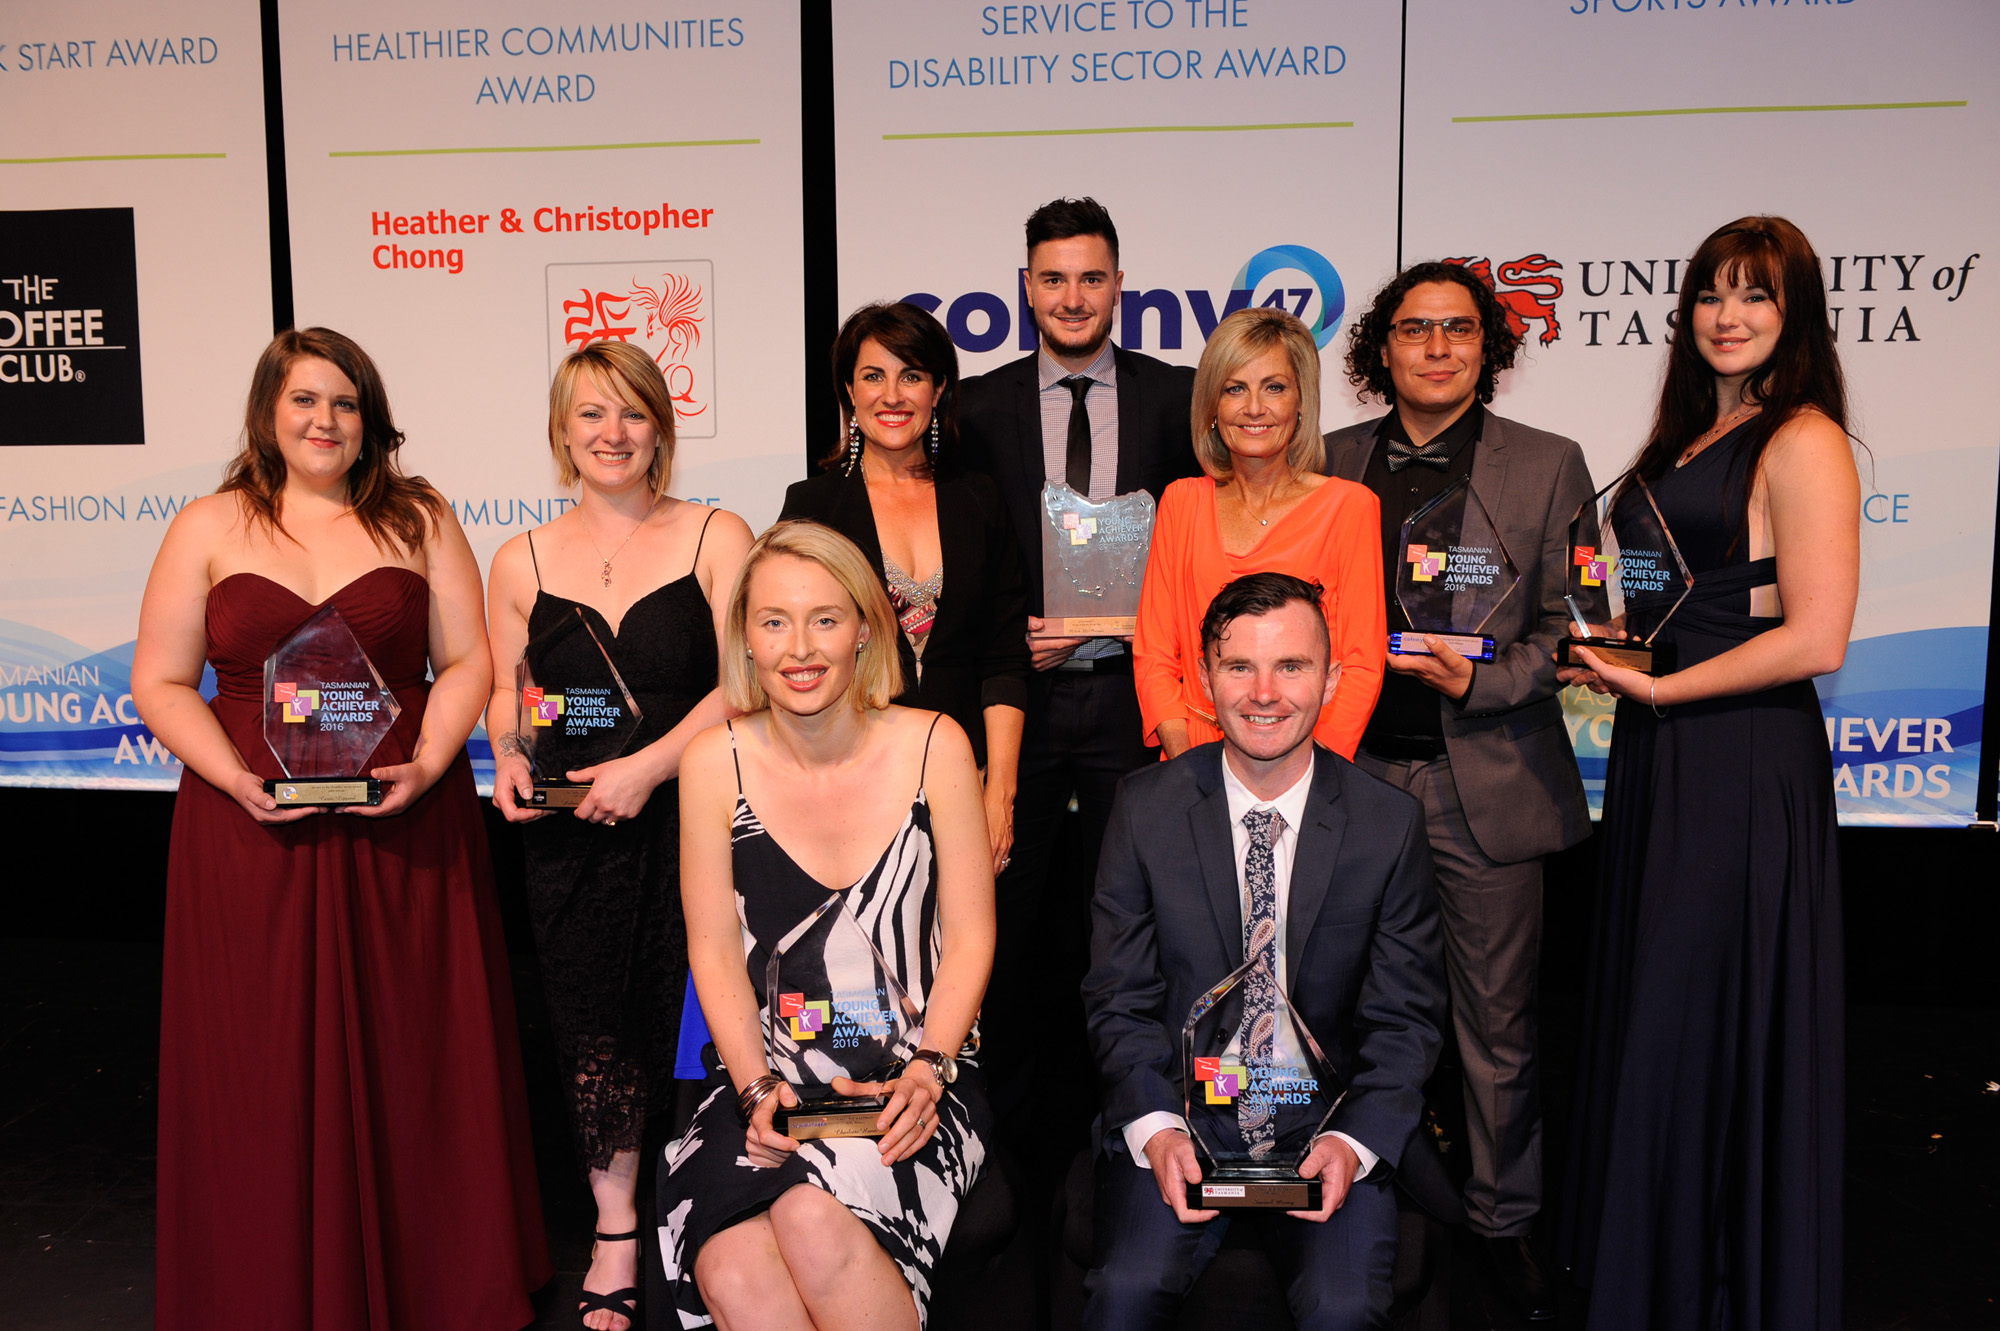 Tasmanian Young Achiever Award Winners